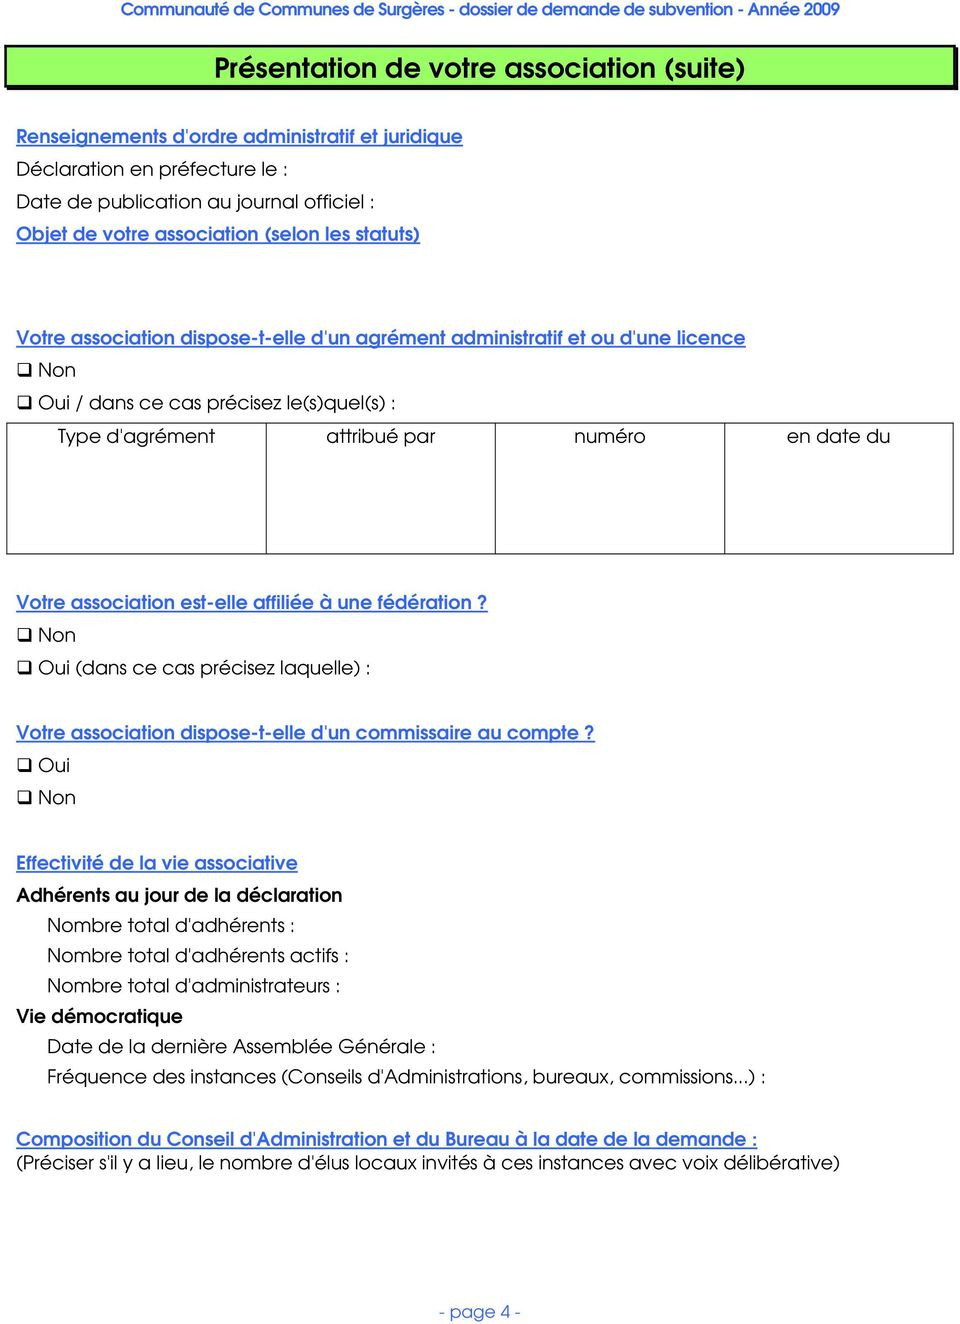 Dossier de demande de subvention association loi 1901 - Composition bureau association loi 1901 ...